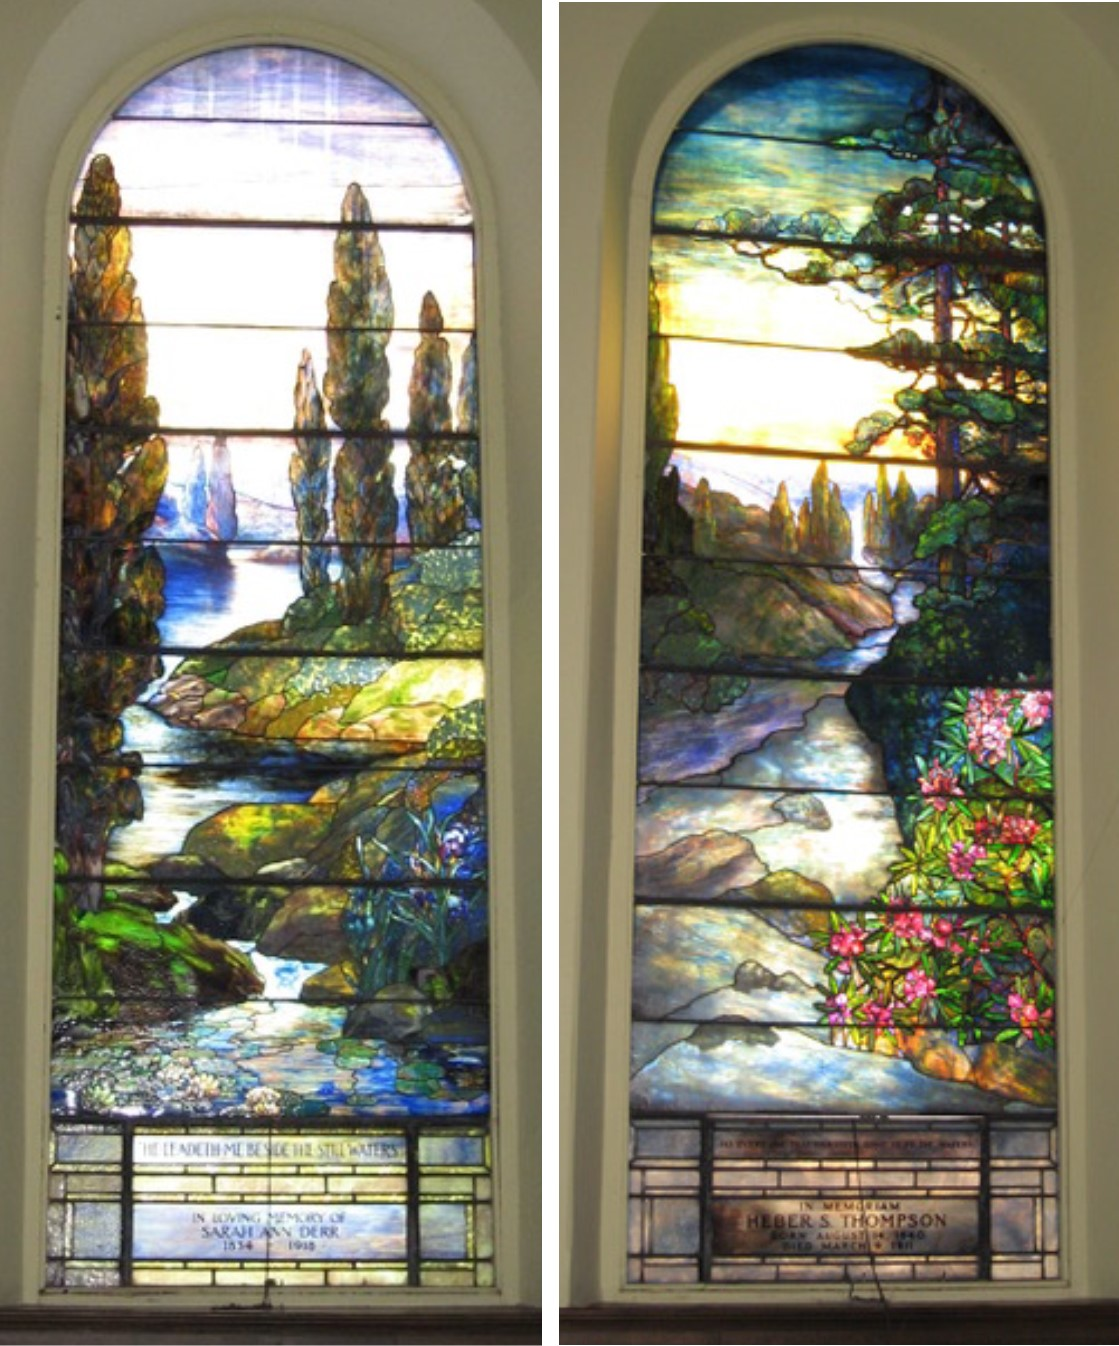 Sale Of Rare Stained Glass Tiffany Windows Helps United Church With